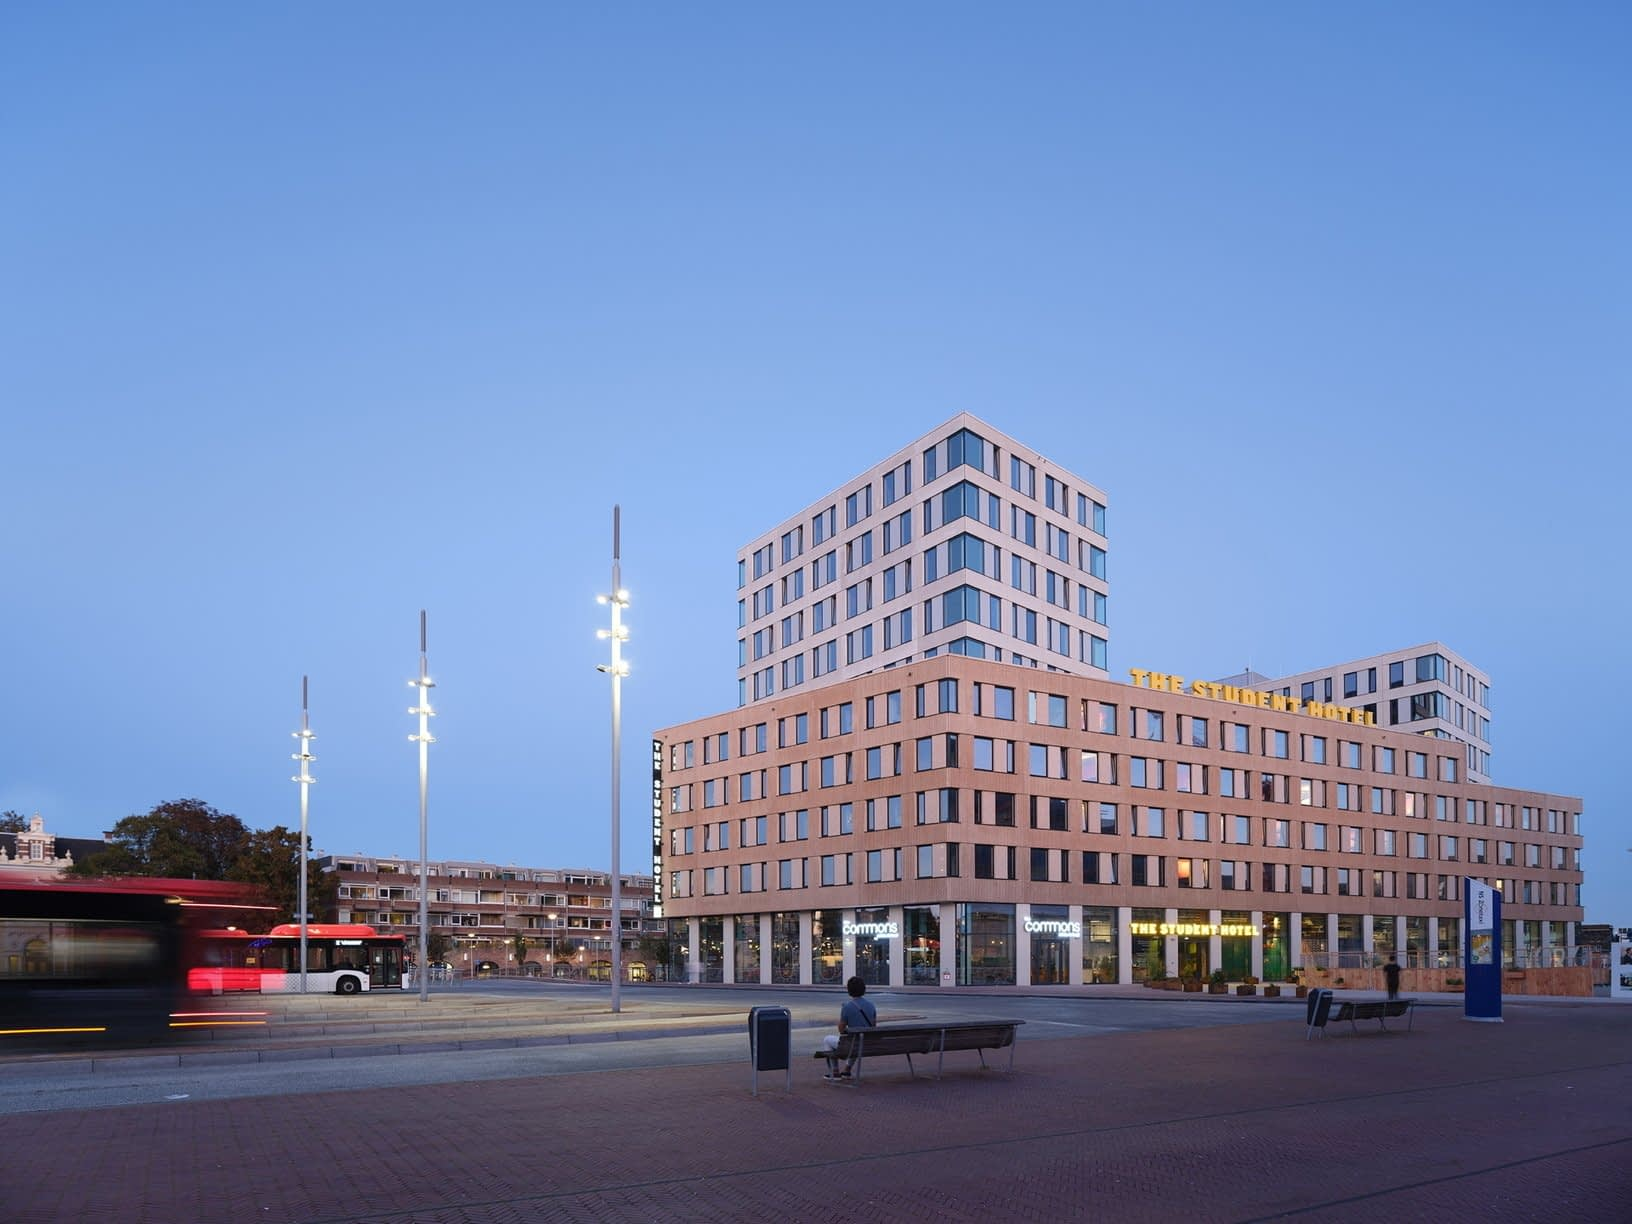 , The Student Hotel in Delft sustainable accommodation by KCAP   Livegreenblog, TheCircularEconomy.com